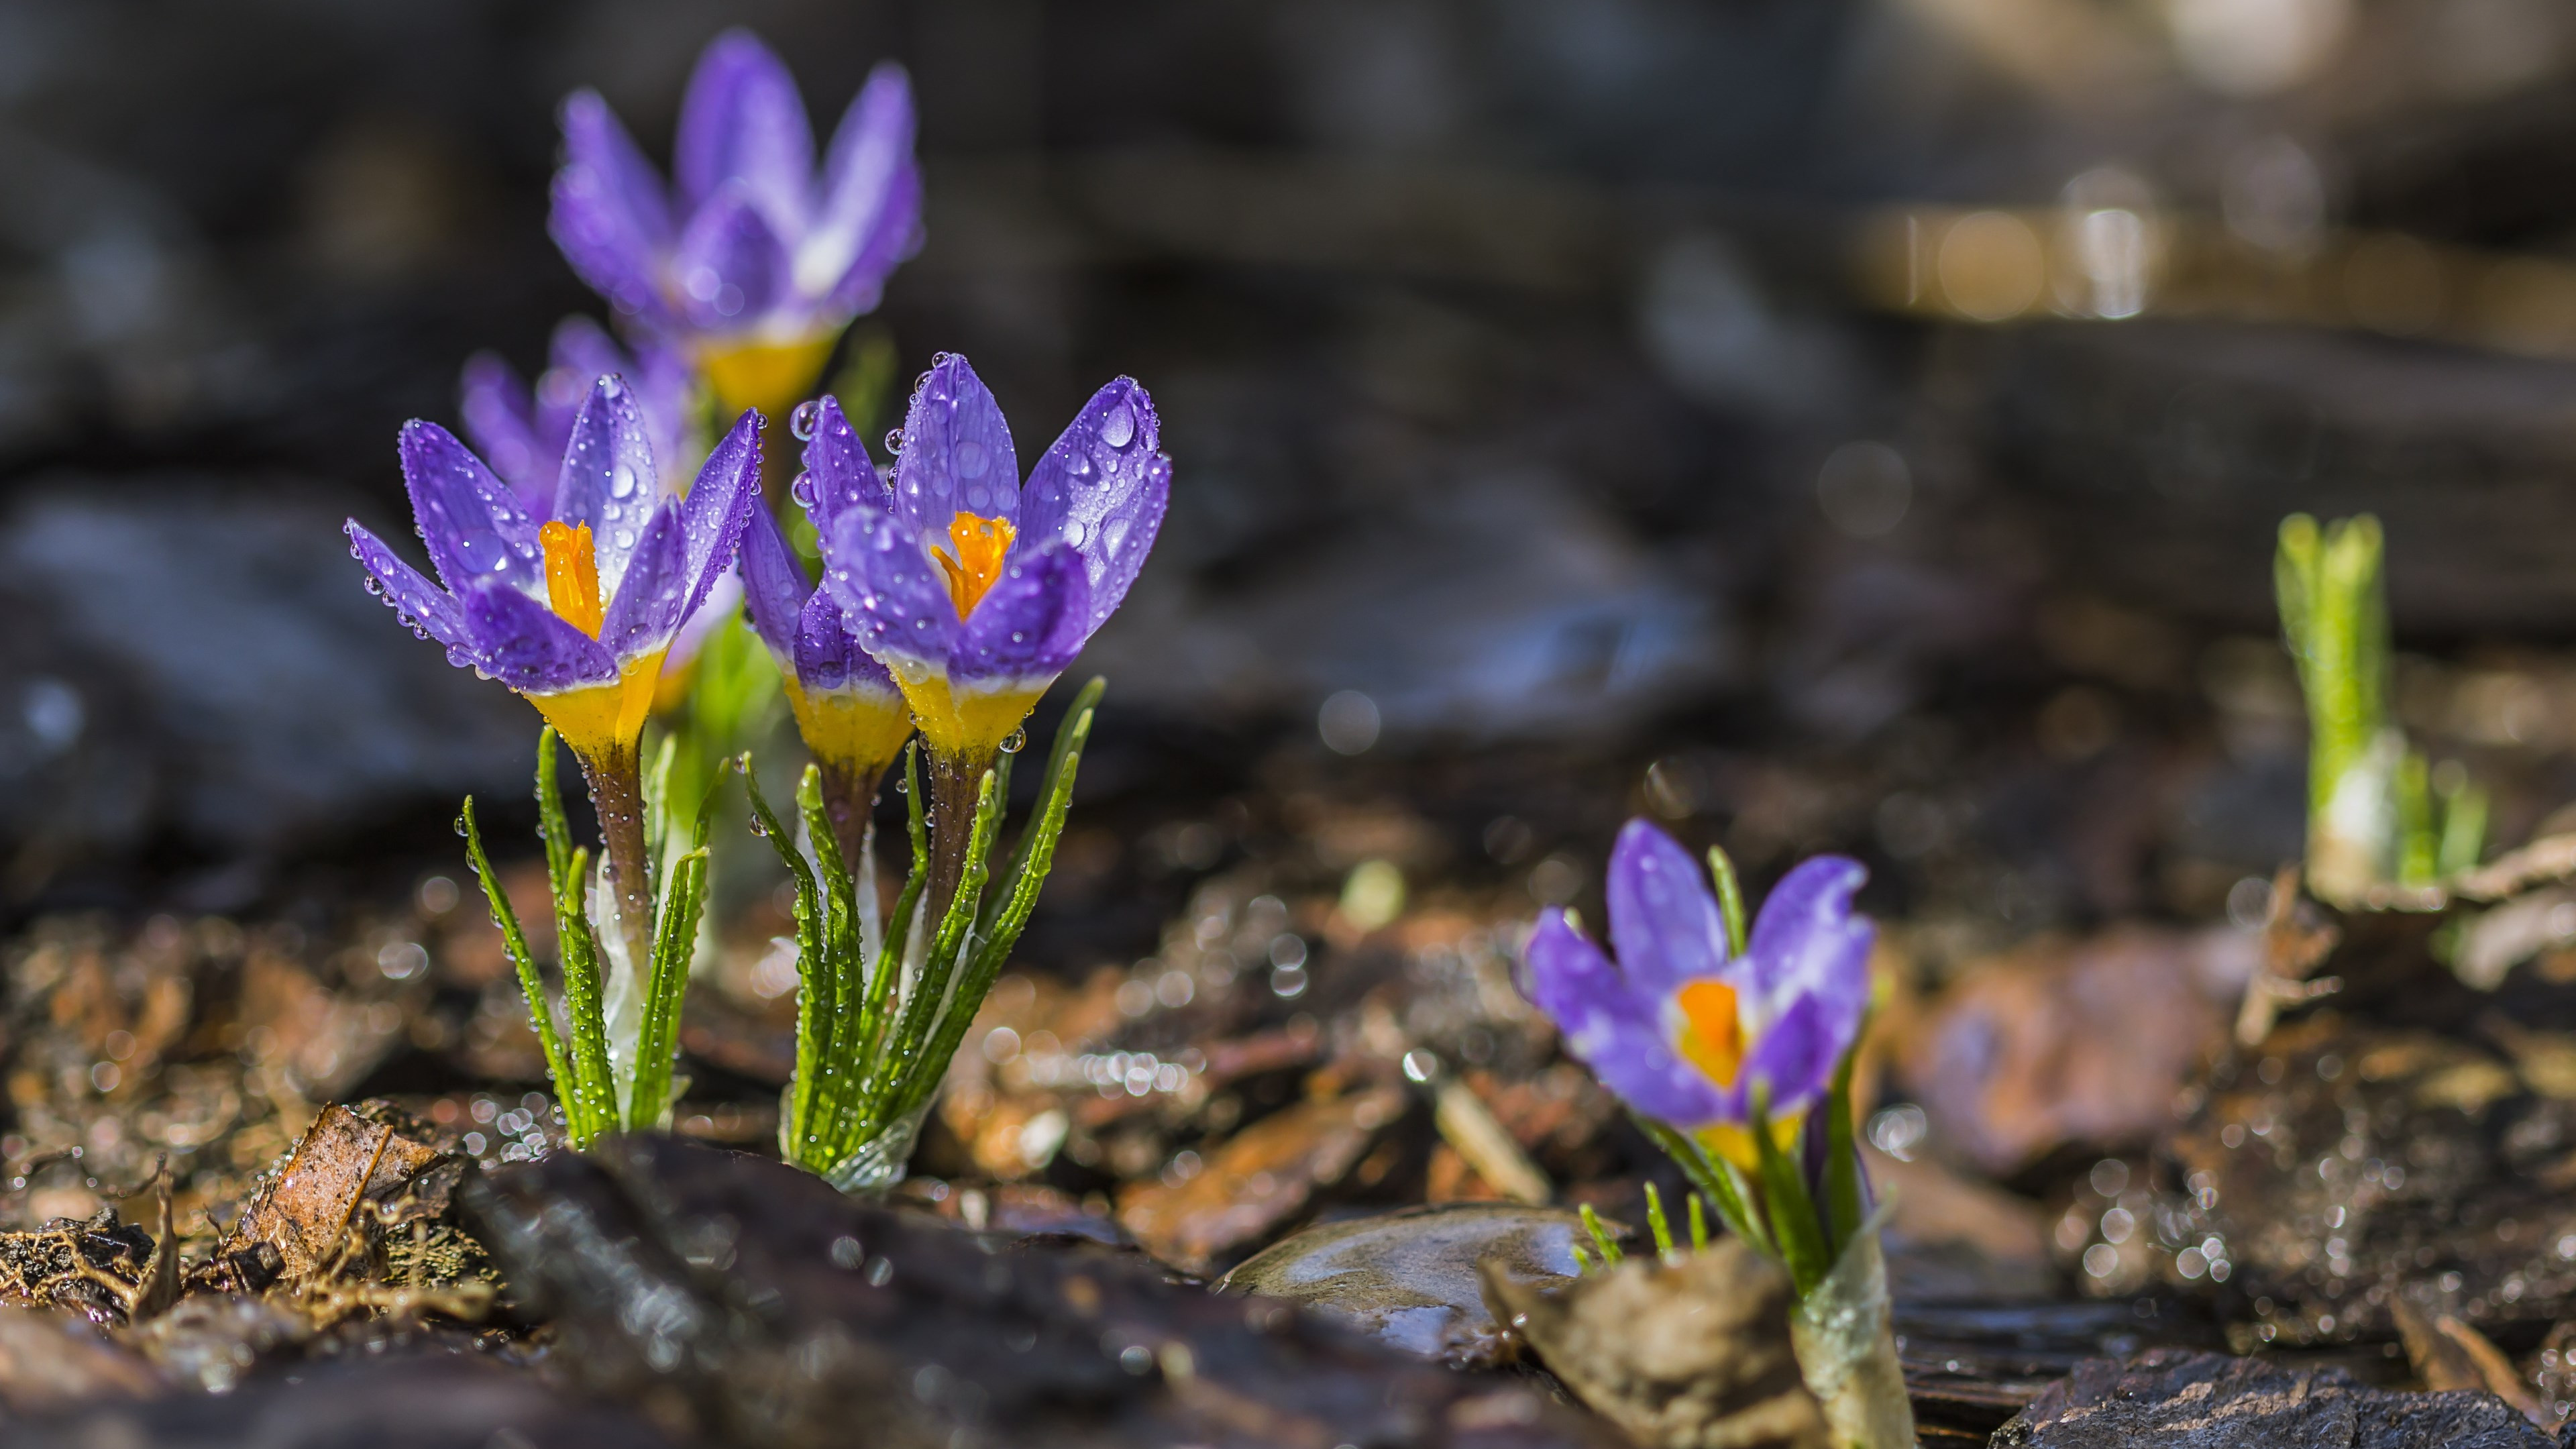 Spring crocuses wallpaper 3840x2160